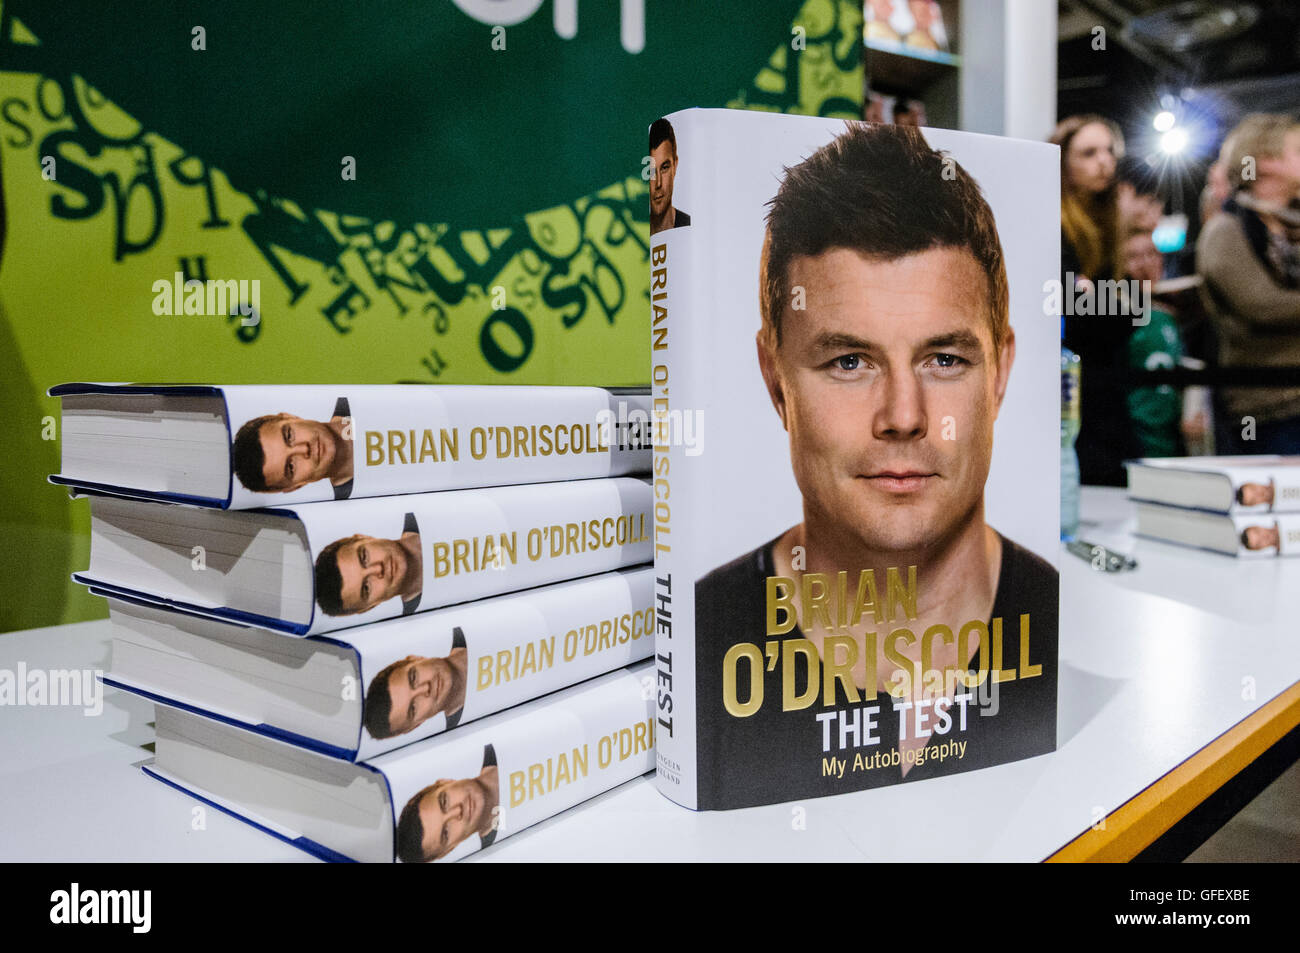 Belfast, Northern Ireland. 15 Nov 2014 - Former Irish Rugby captain Brian O'Driscoll signs copies of his autobiography - Stock Image